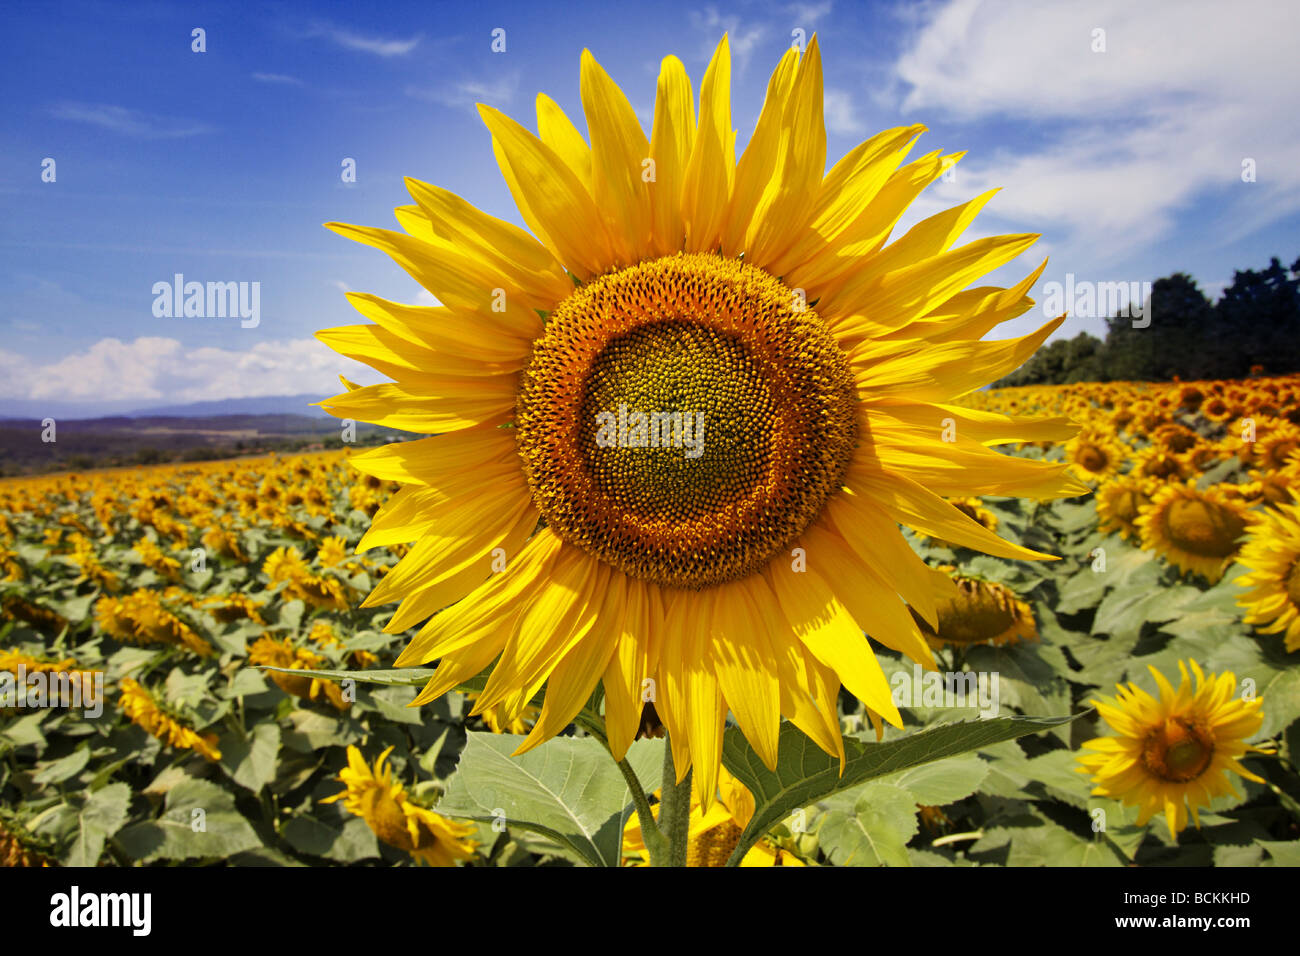 Sunflower in sunflower field with blue sky Stock Photo